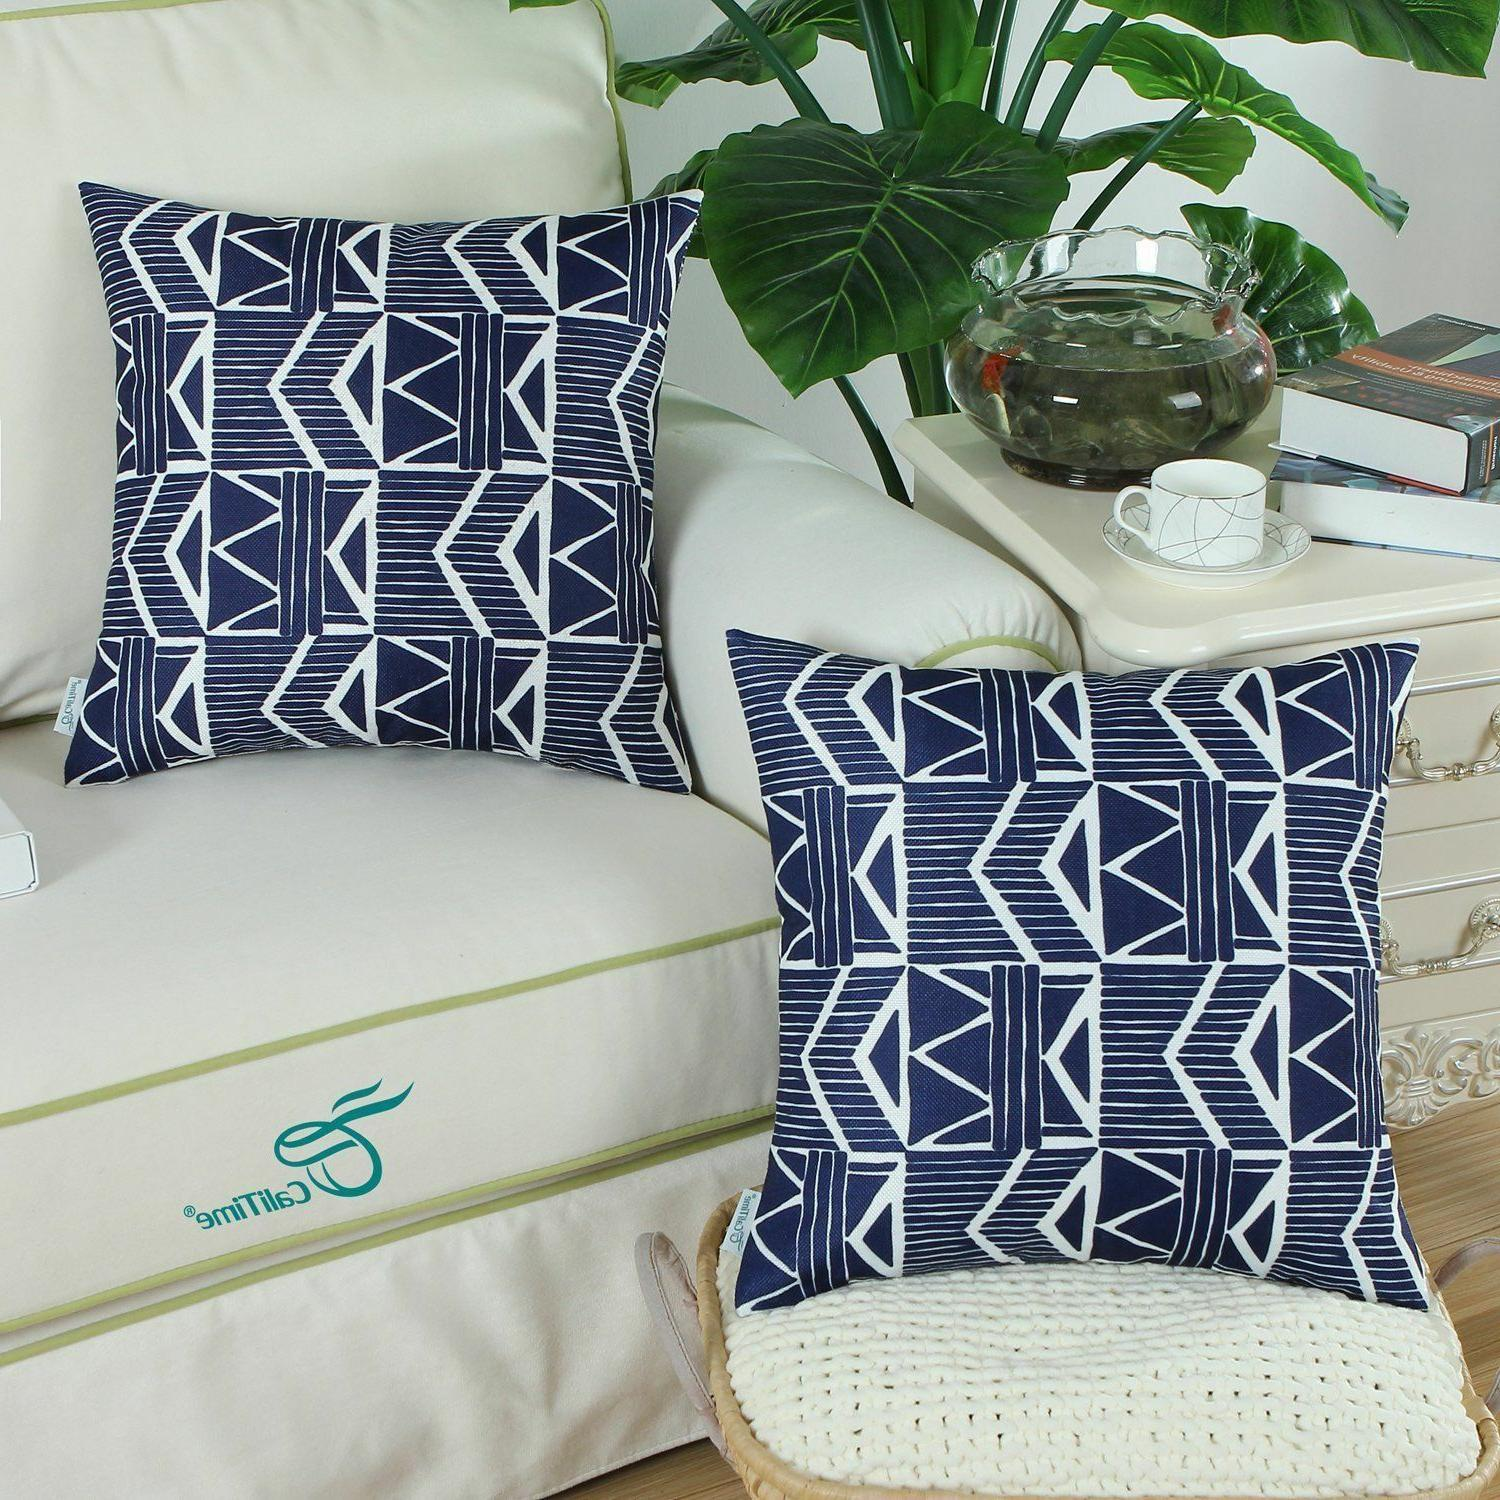 Navy Throw Covers 18x18, Pack